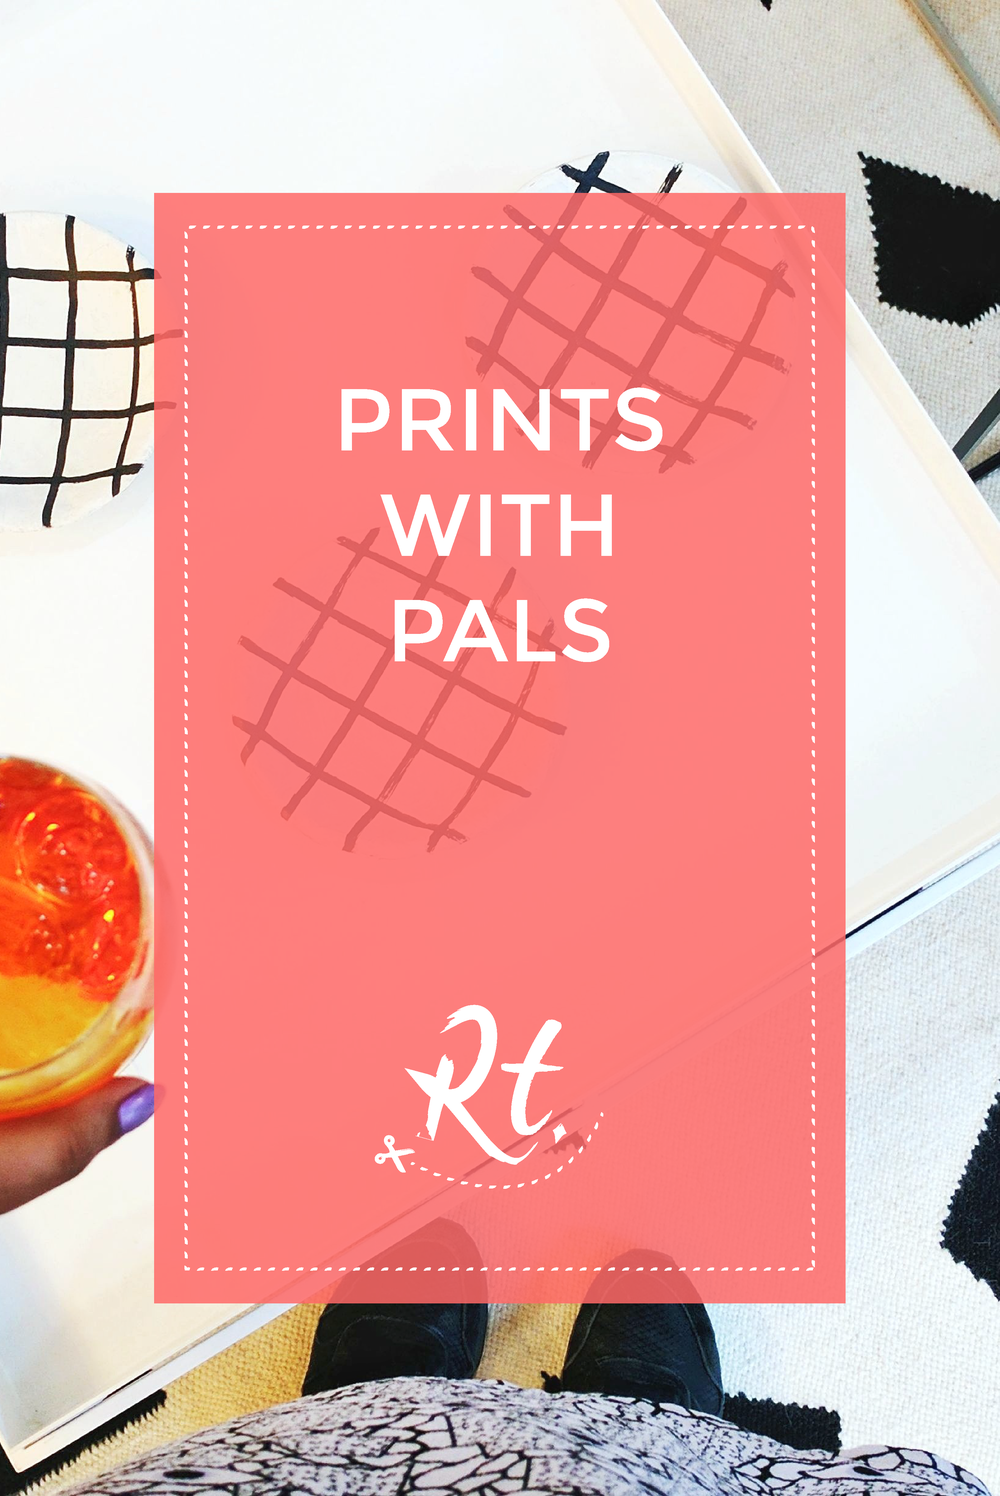 Prints with Pals by Rosh Thanki, We Blog Design Summer Social at Future and Found with Kangan Arora rug